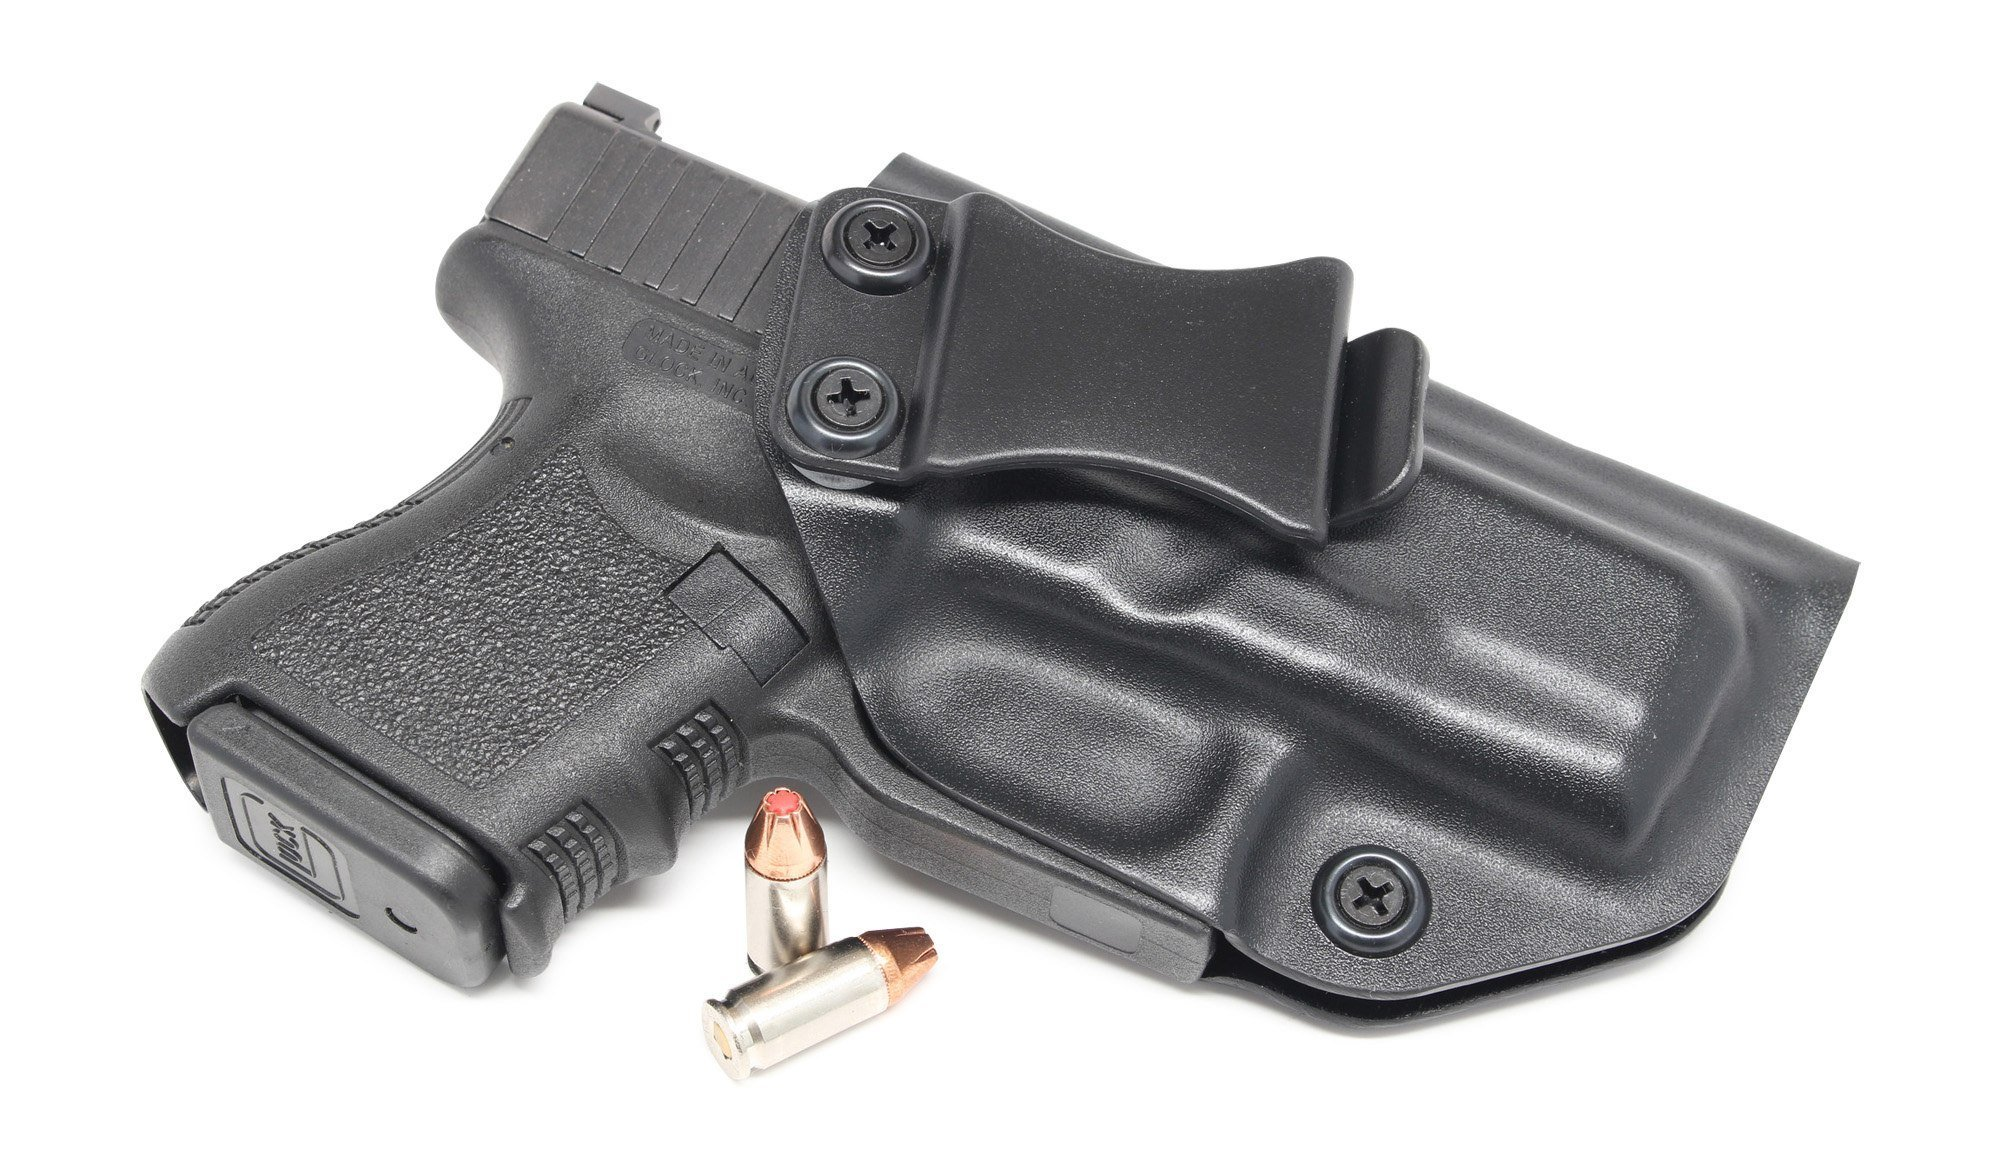 IWB Kydex Holster by Concealment Express